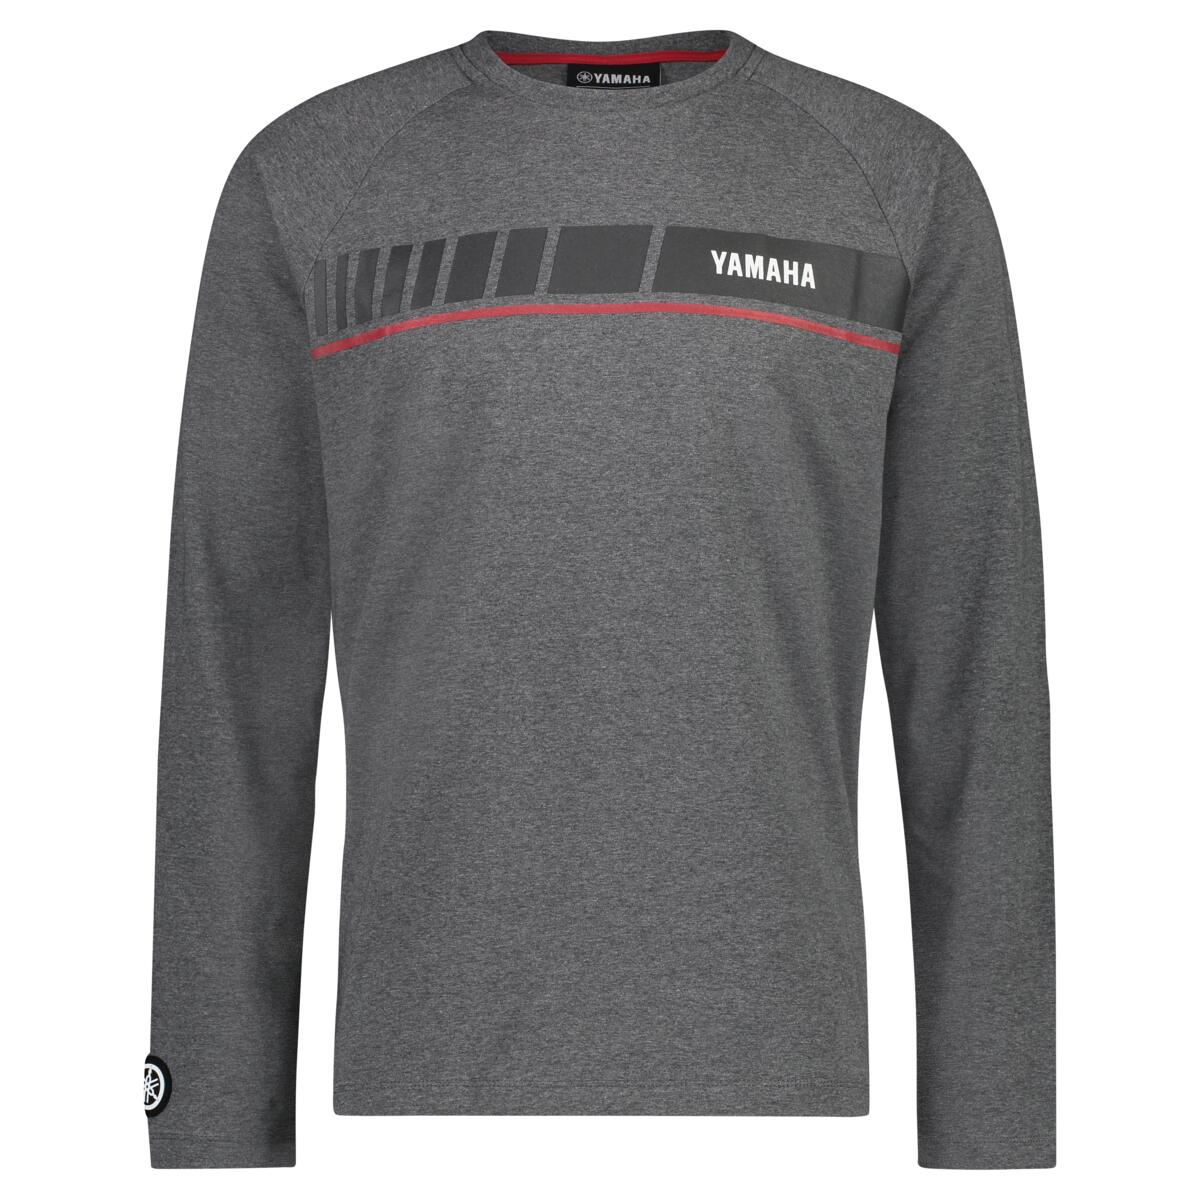 REVS Men's Long Sleeve T-shirt - Grey / Black